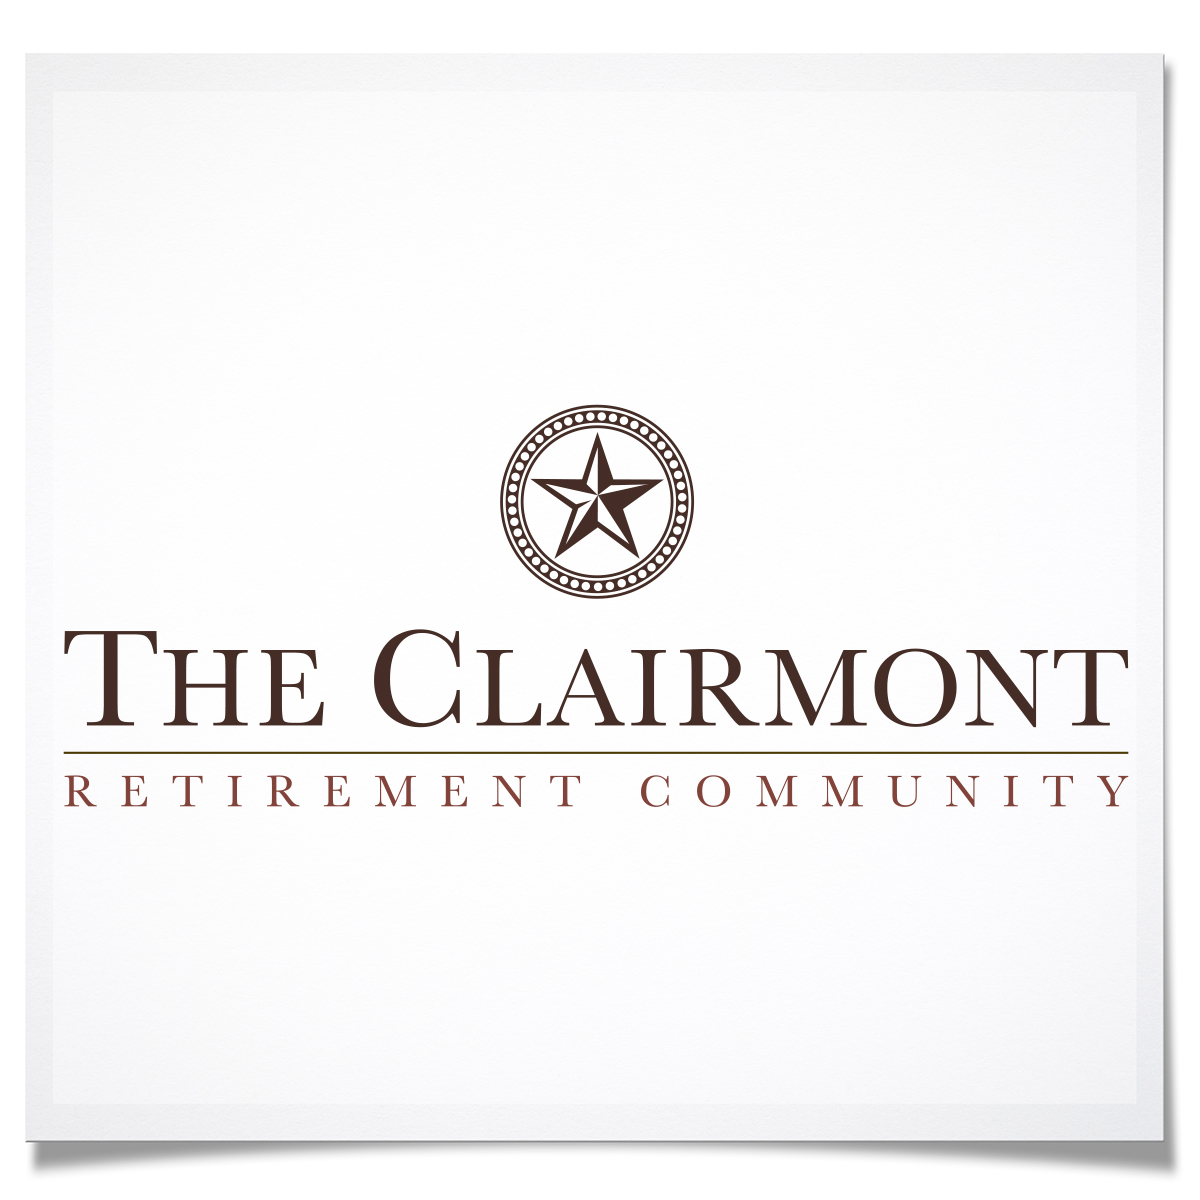 The Clairmont Retirement Community - Austin, TX - Retirement Communities